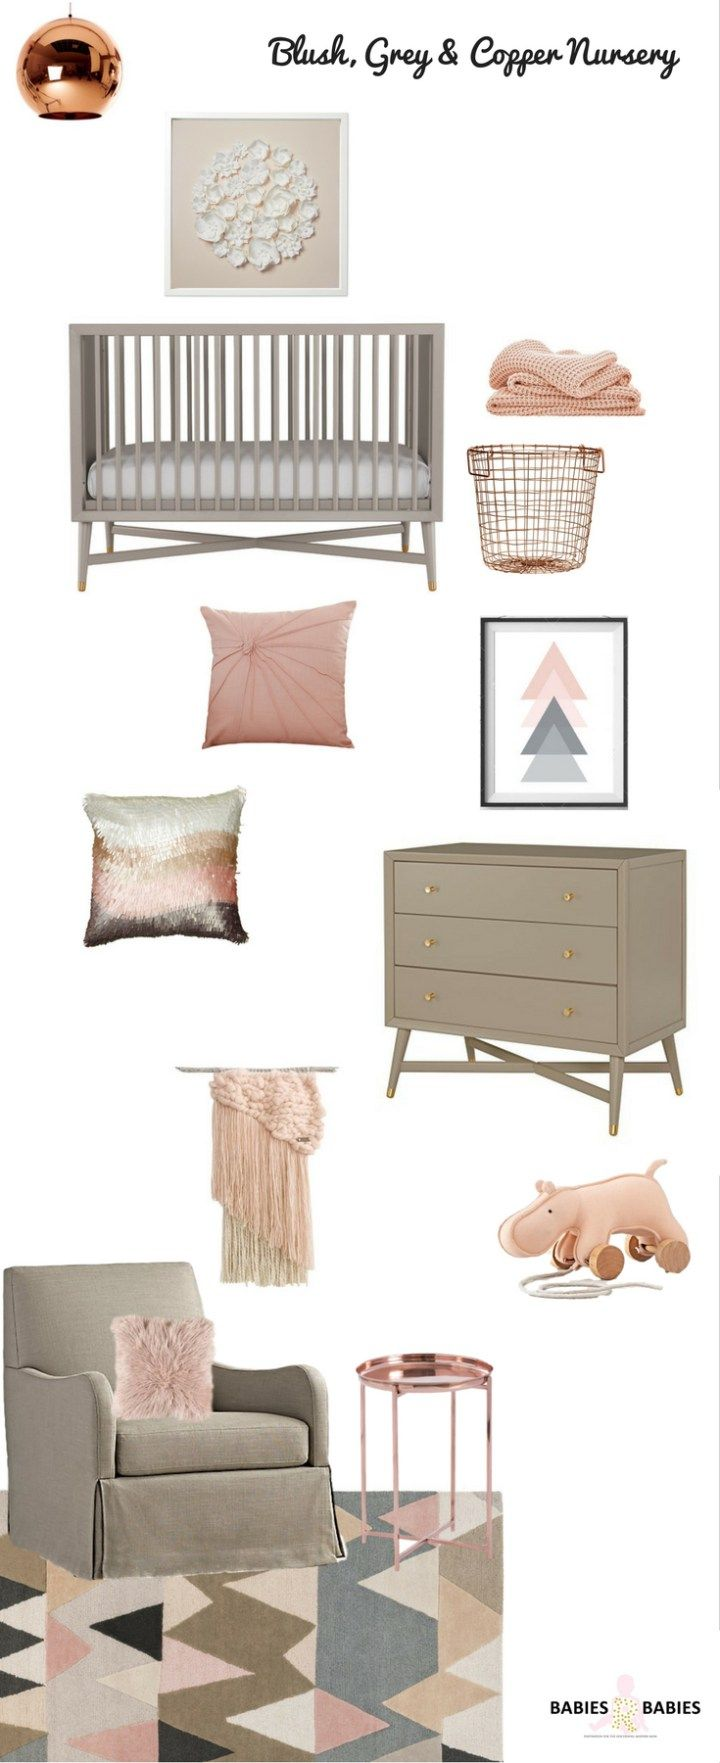 A blush grey and copper nursery design, nursery design inspiration,mid century nursery